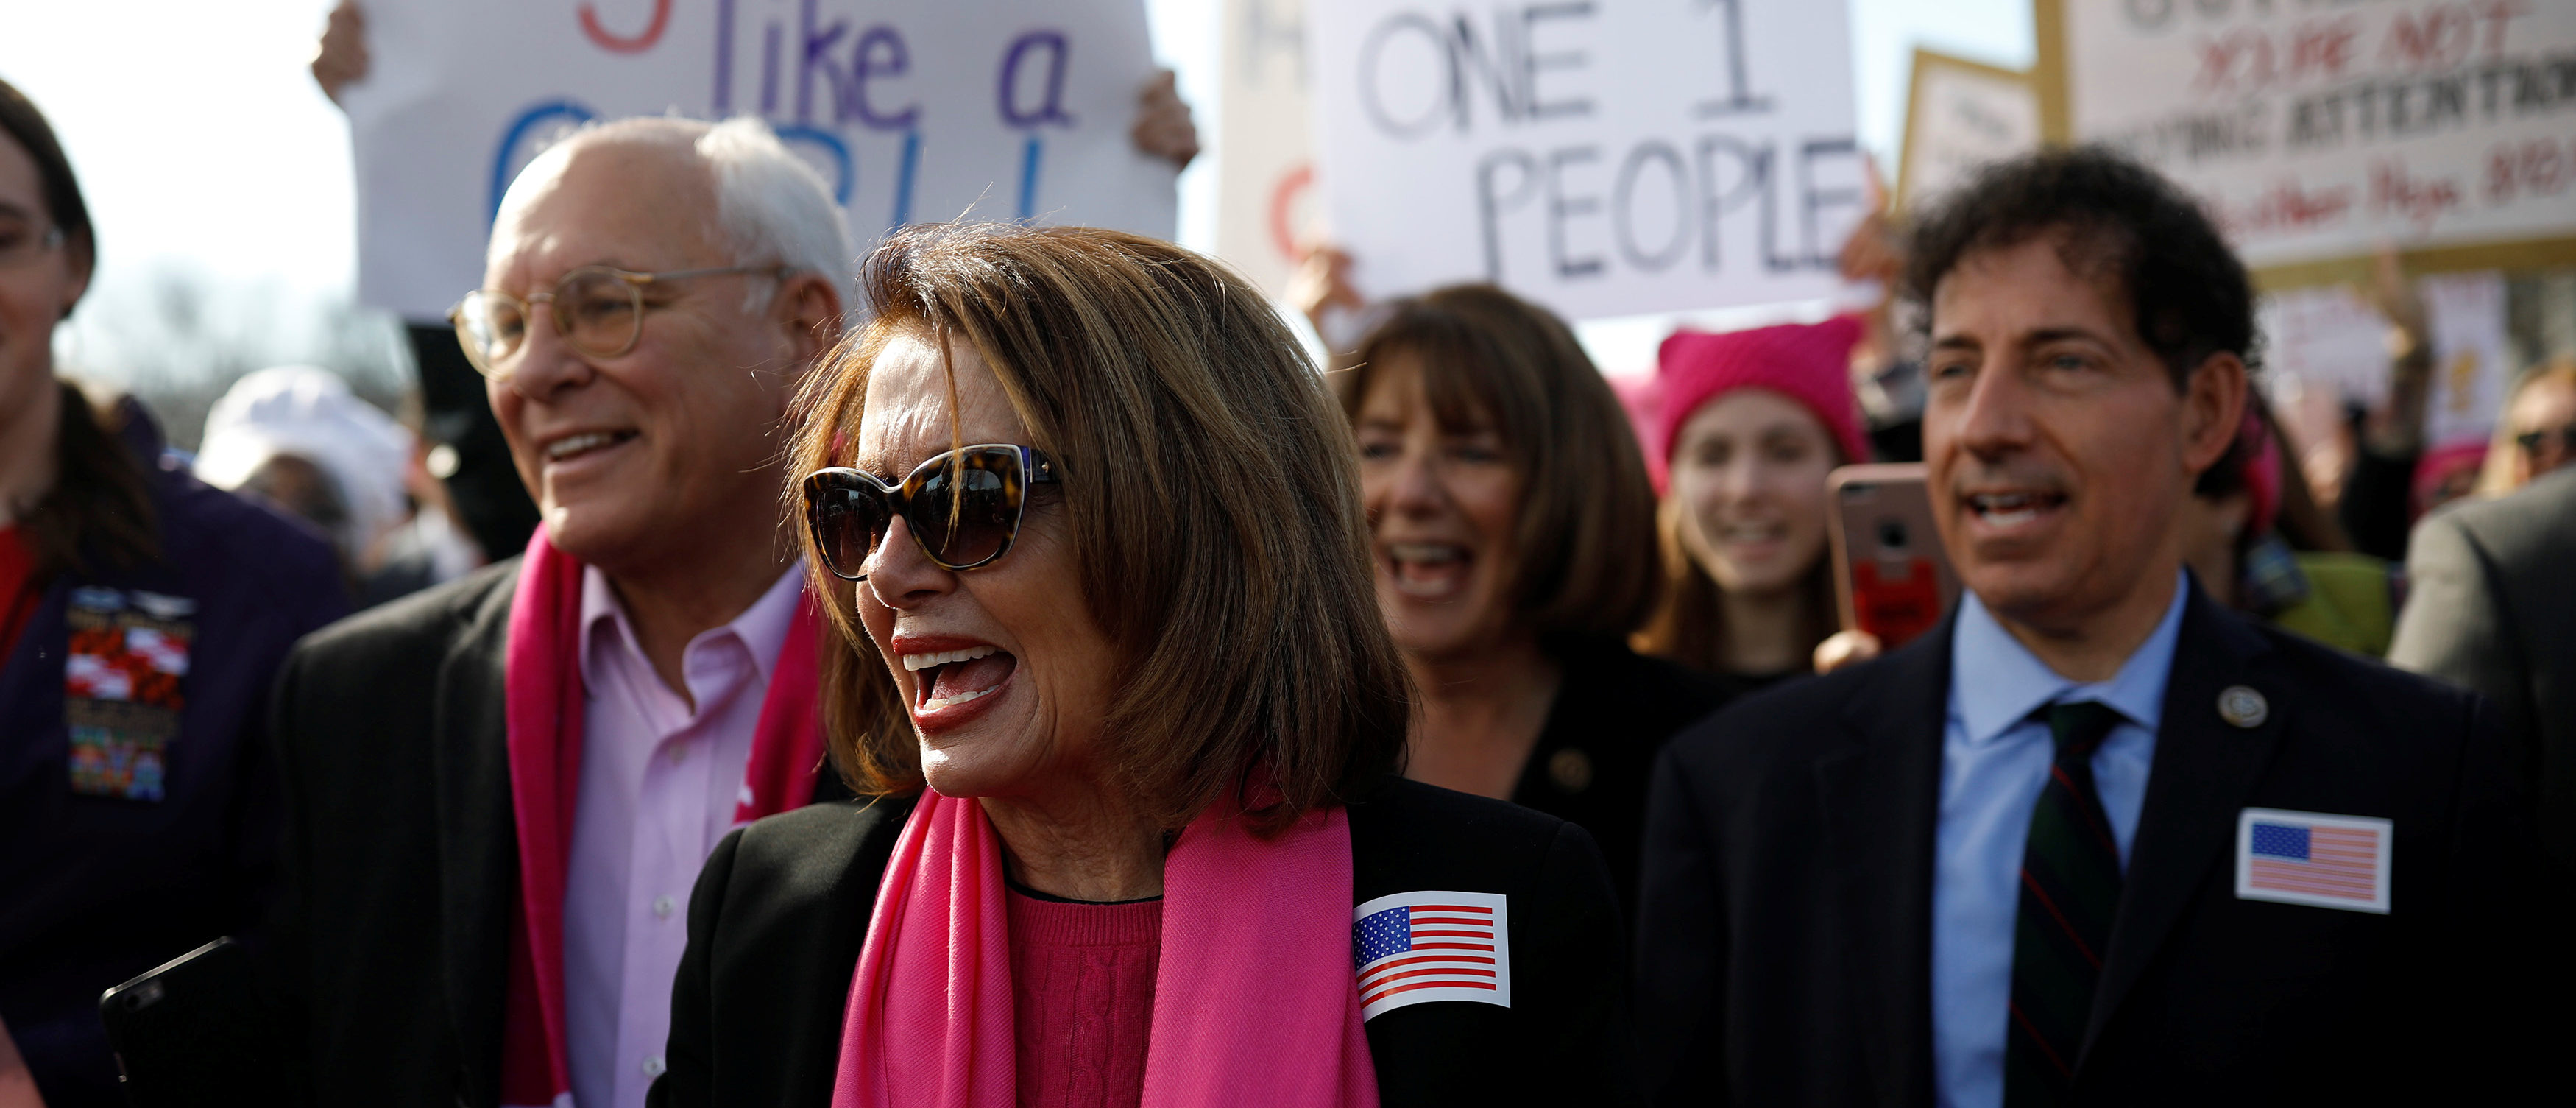 House Minority Leader Nancy Pelosi participates in the second annual Women's March in Washington, U.S. January 20, 2018. REUTERS/Aaron Bernstein -